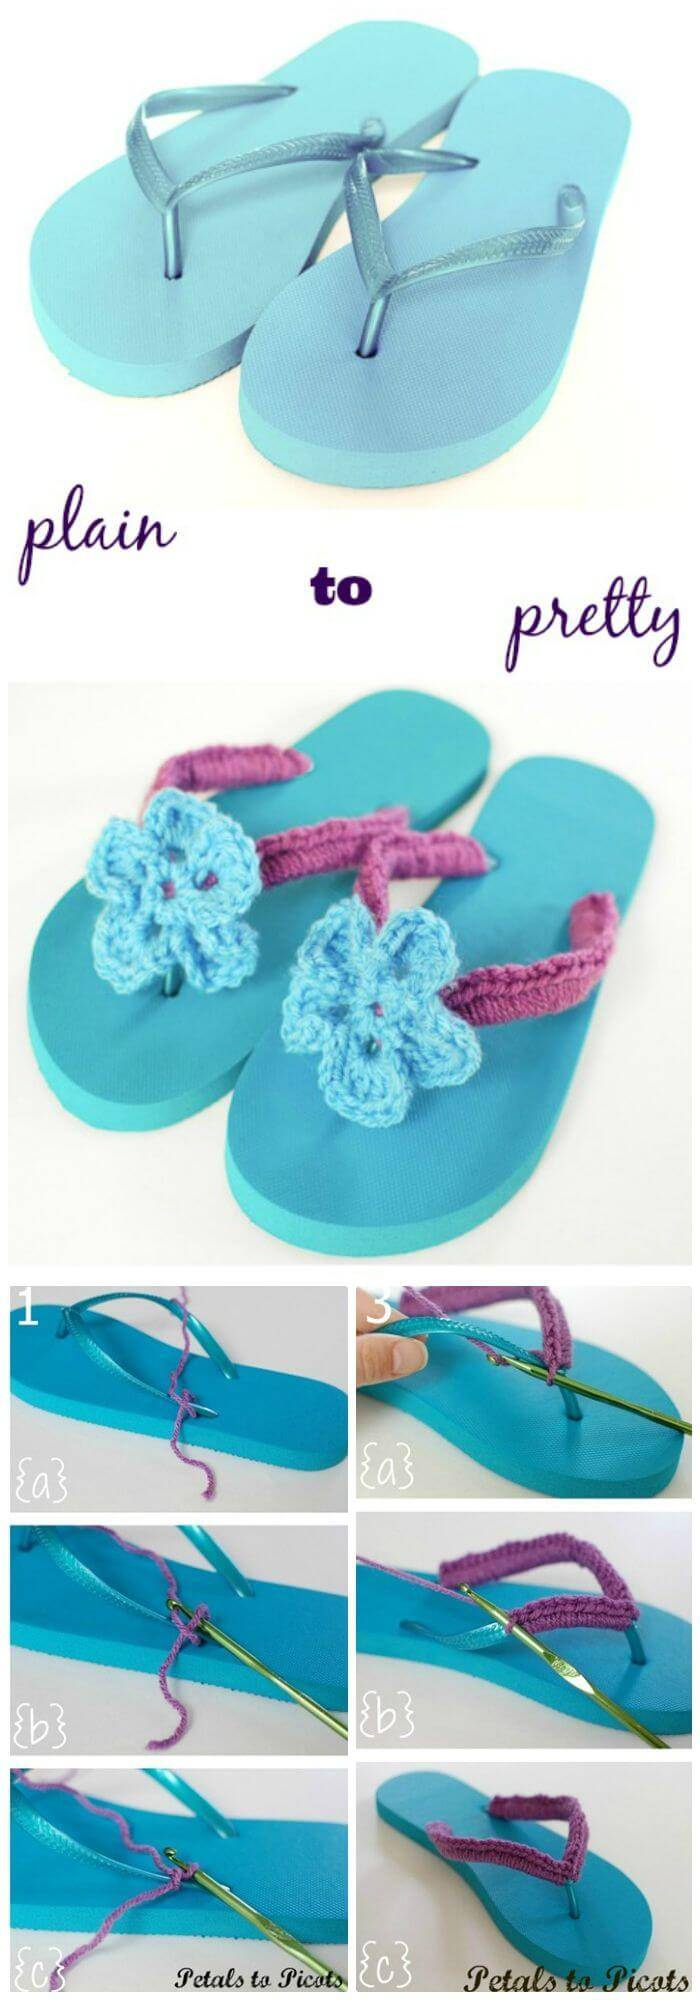 49ed2cc87 22 Crochet Slippers   Boot   Shoes   Flip Flops - Free Patterns ...